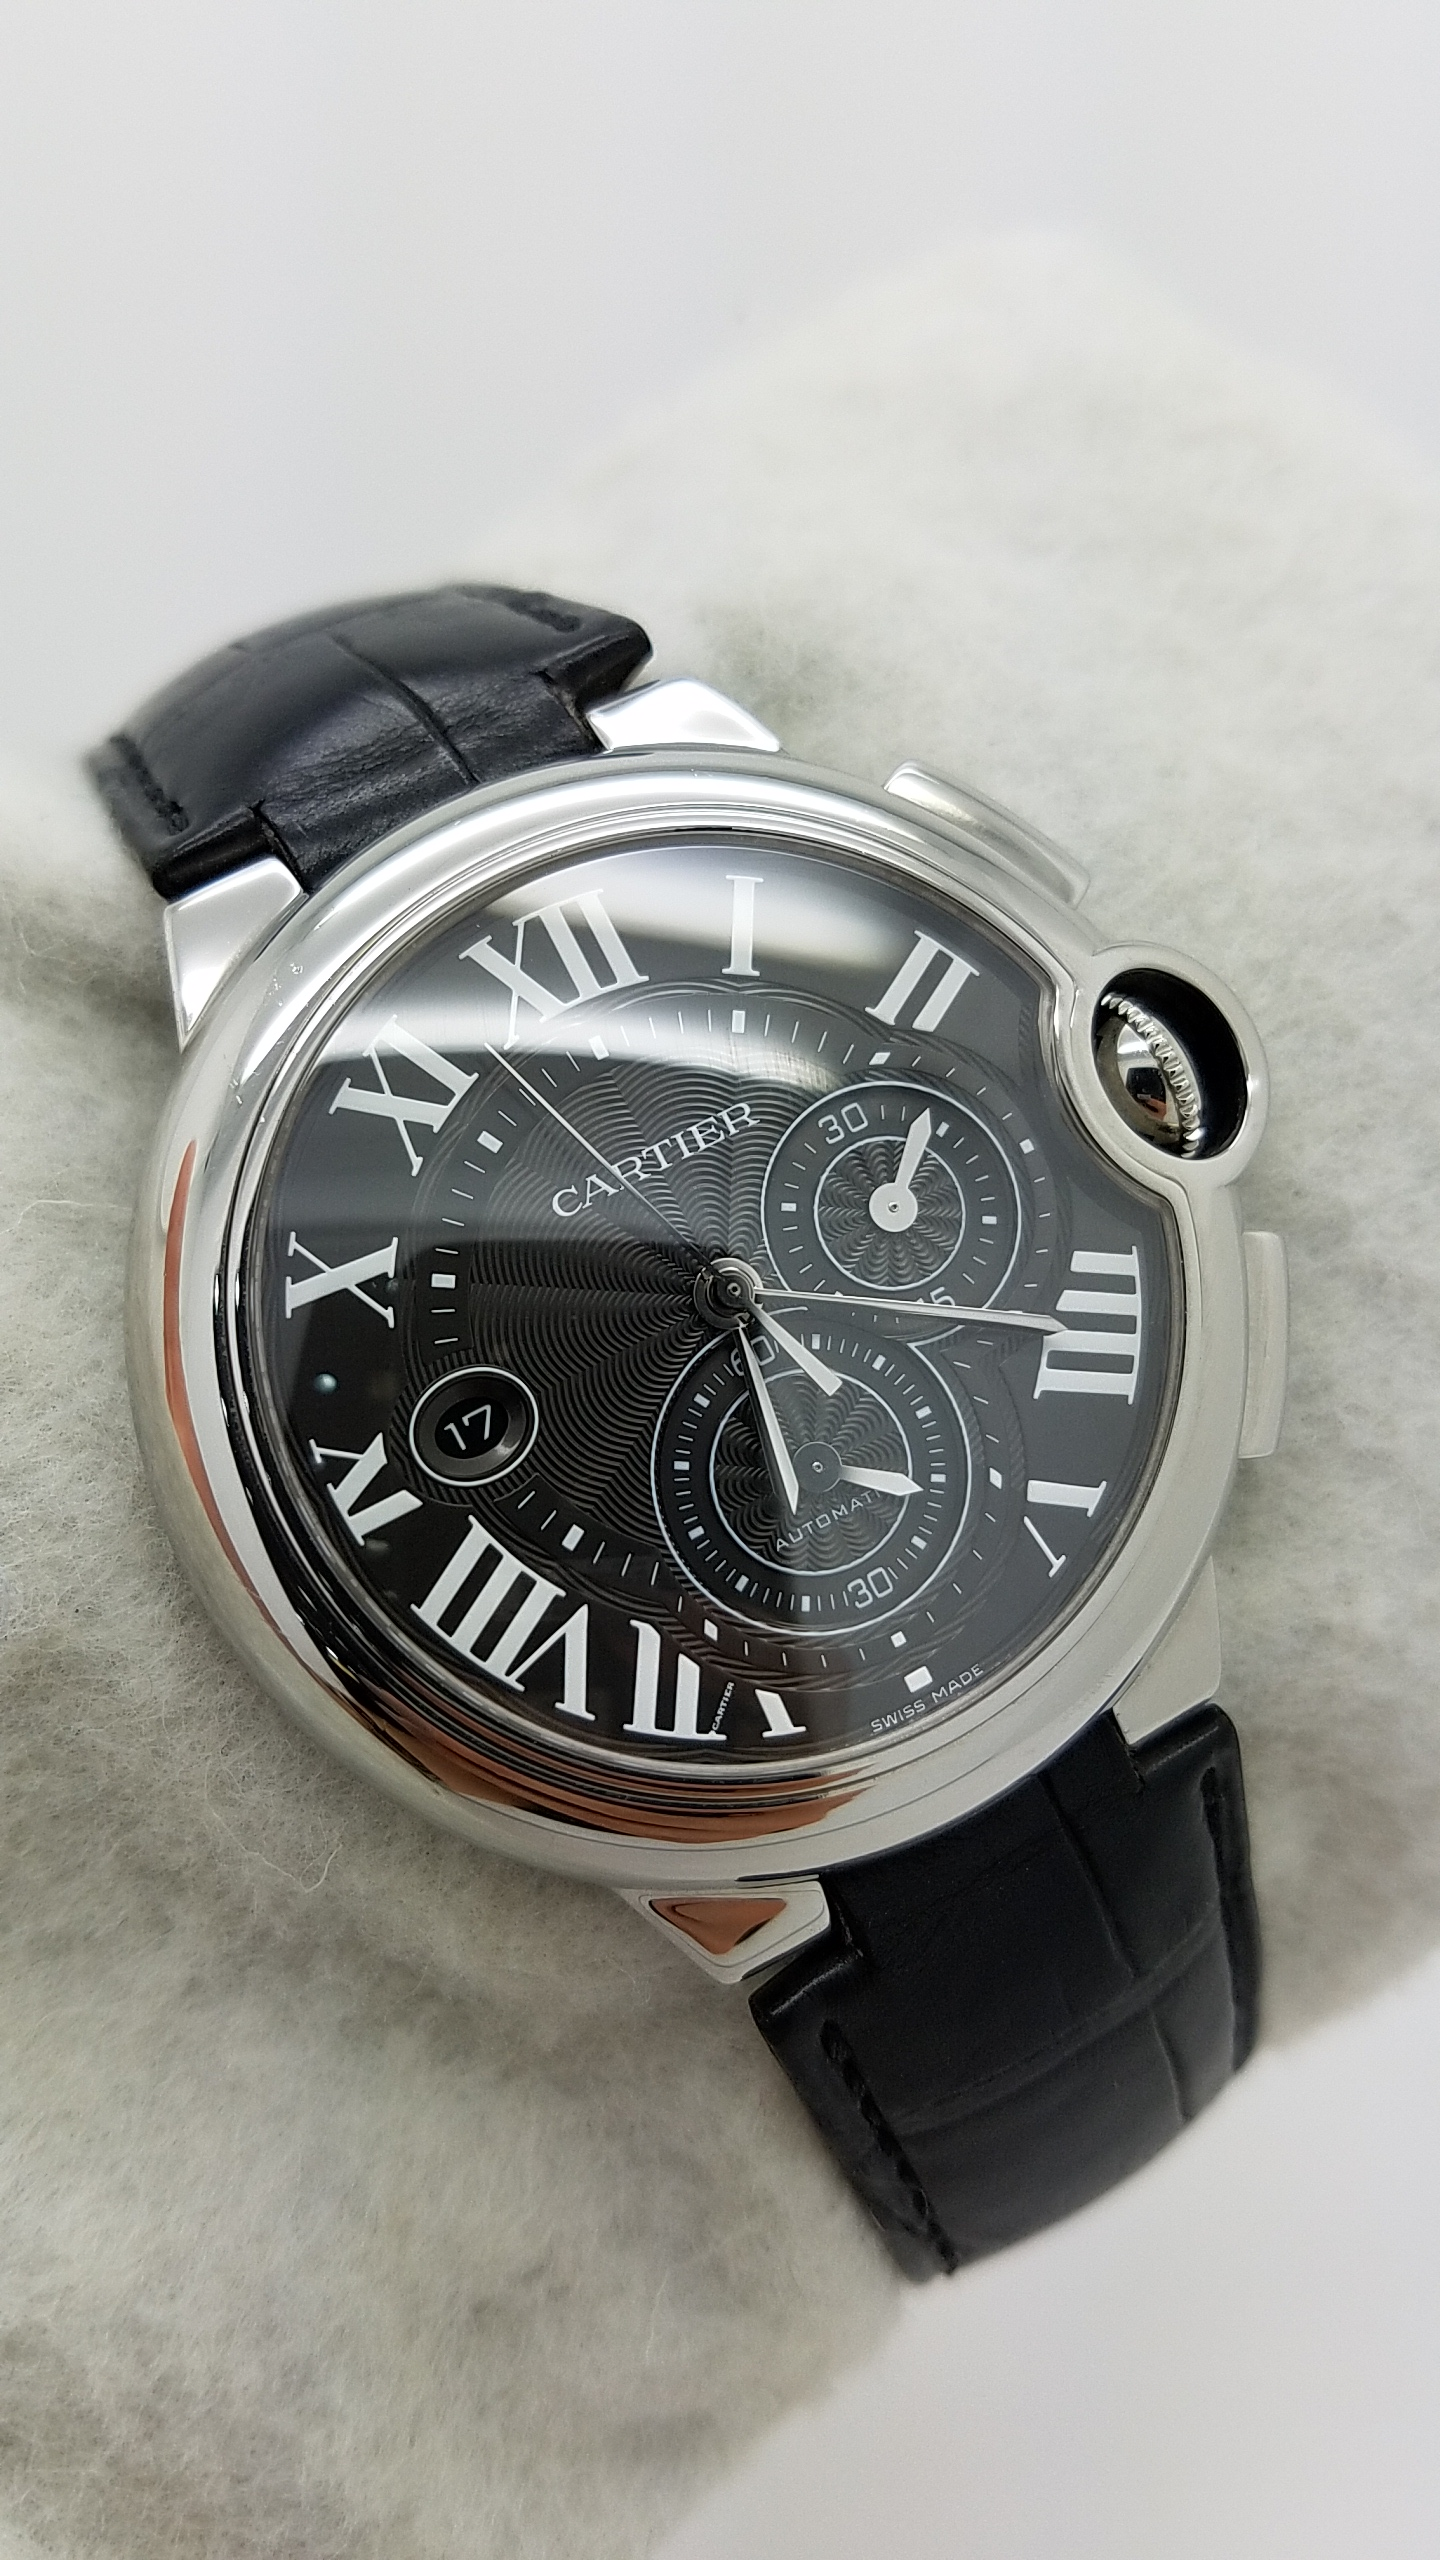 CARTIER	BALLON BLEU chronograph	3109 - W6920052	BLACK roman	Stainless Steel	Genuine Leather	44mm			Mechanical (Automatic)	Watch